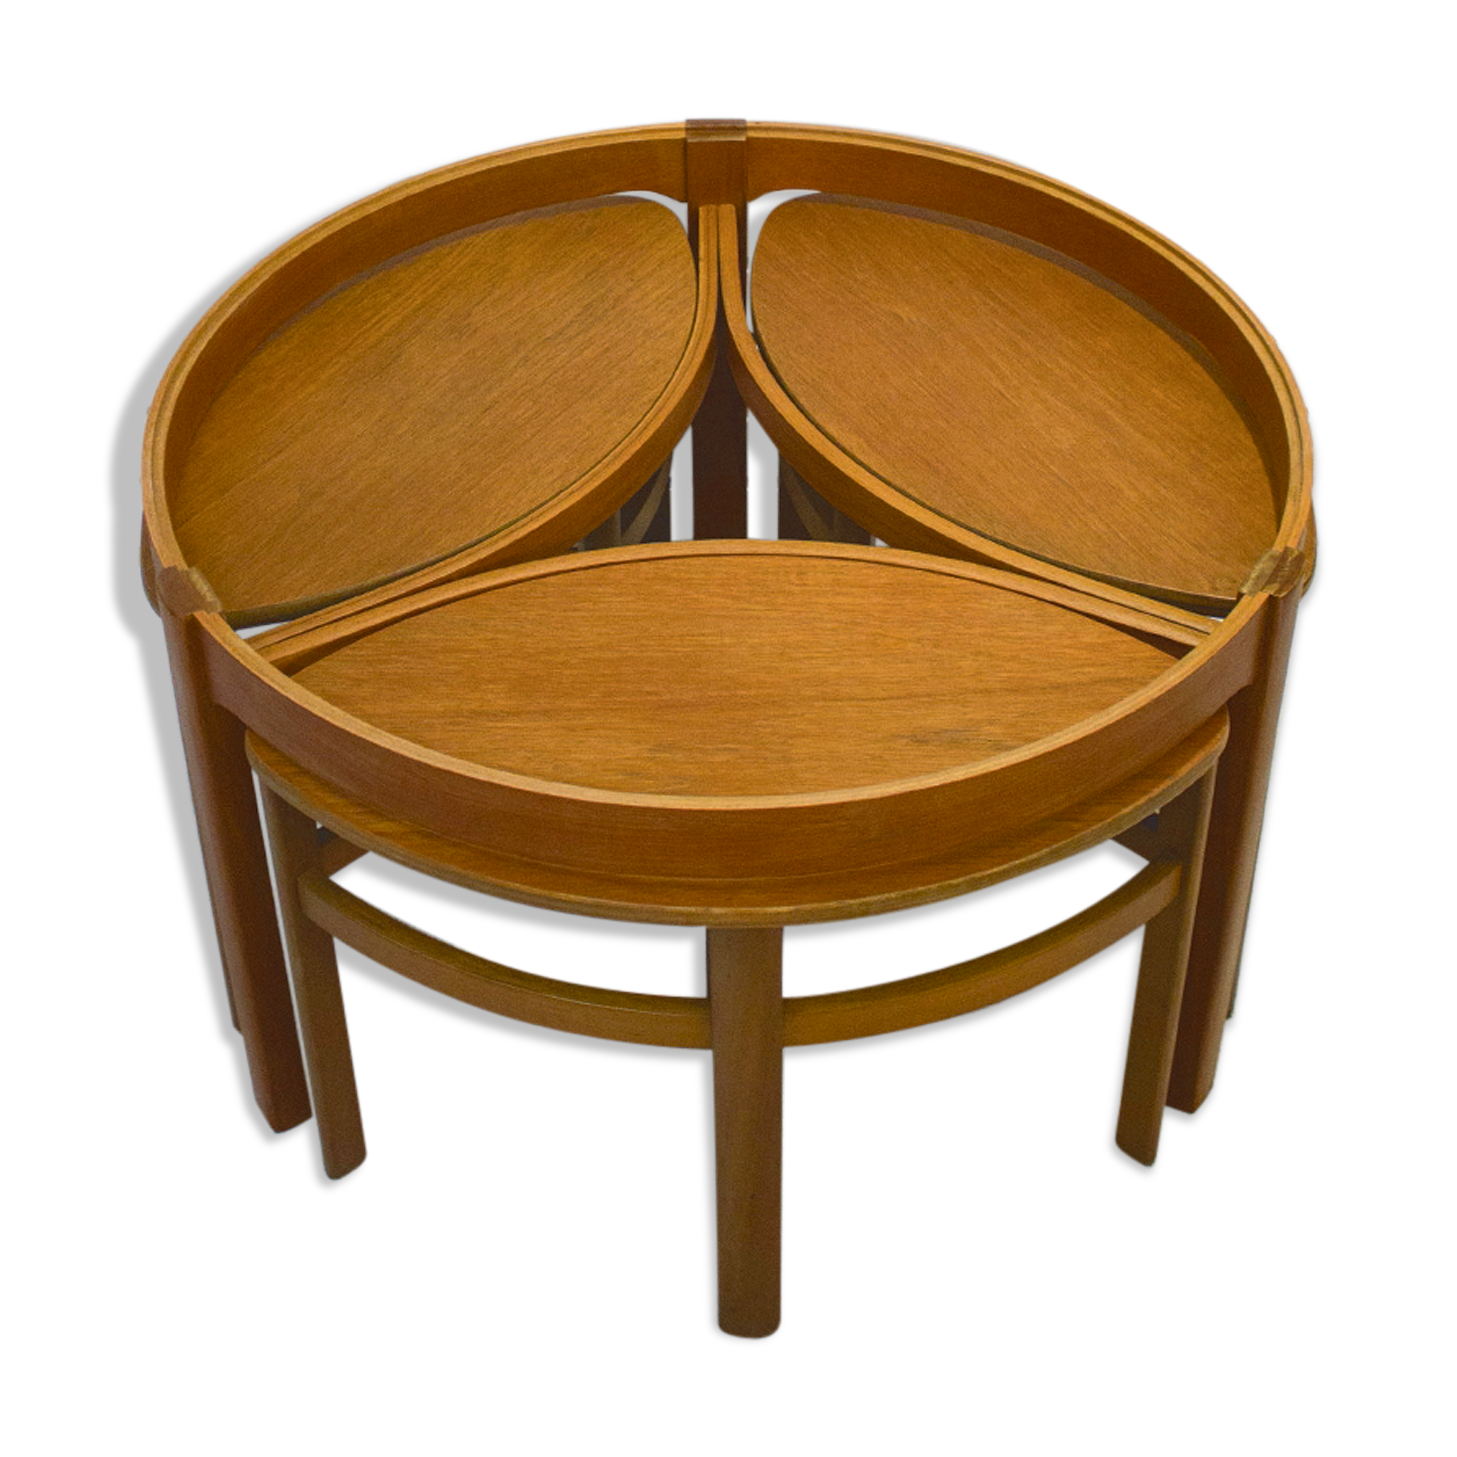 5614 Trinity Table Top Model Trim Table Set From Nathan 1960   Teak   Brown    Scandinavian   Cn0l4aR